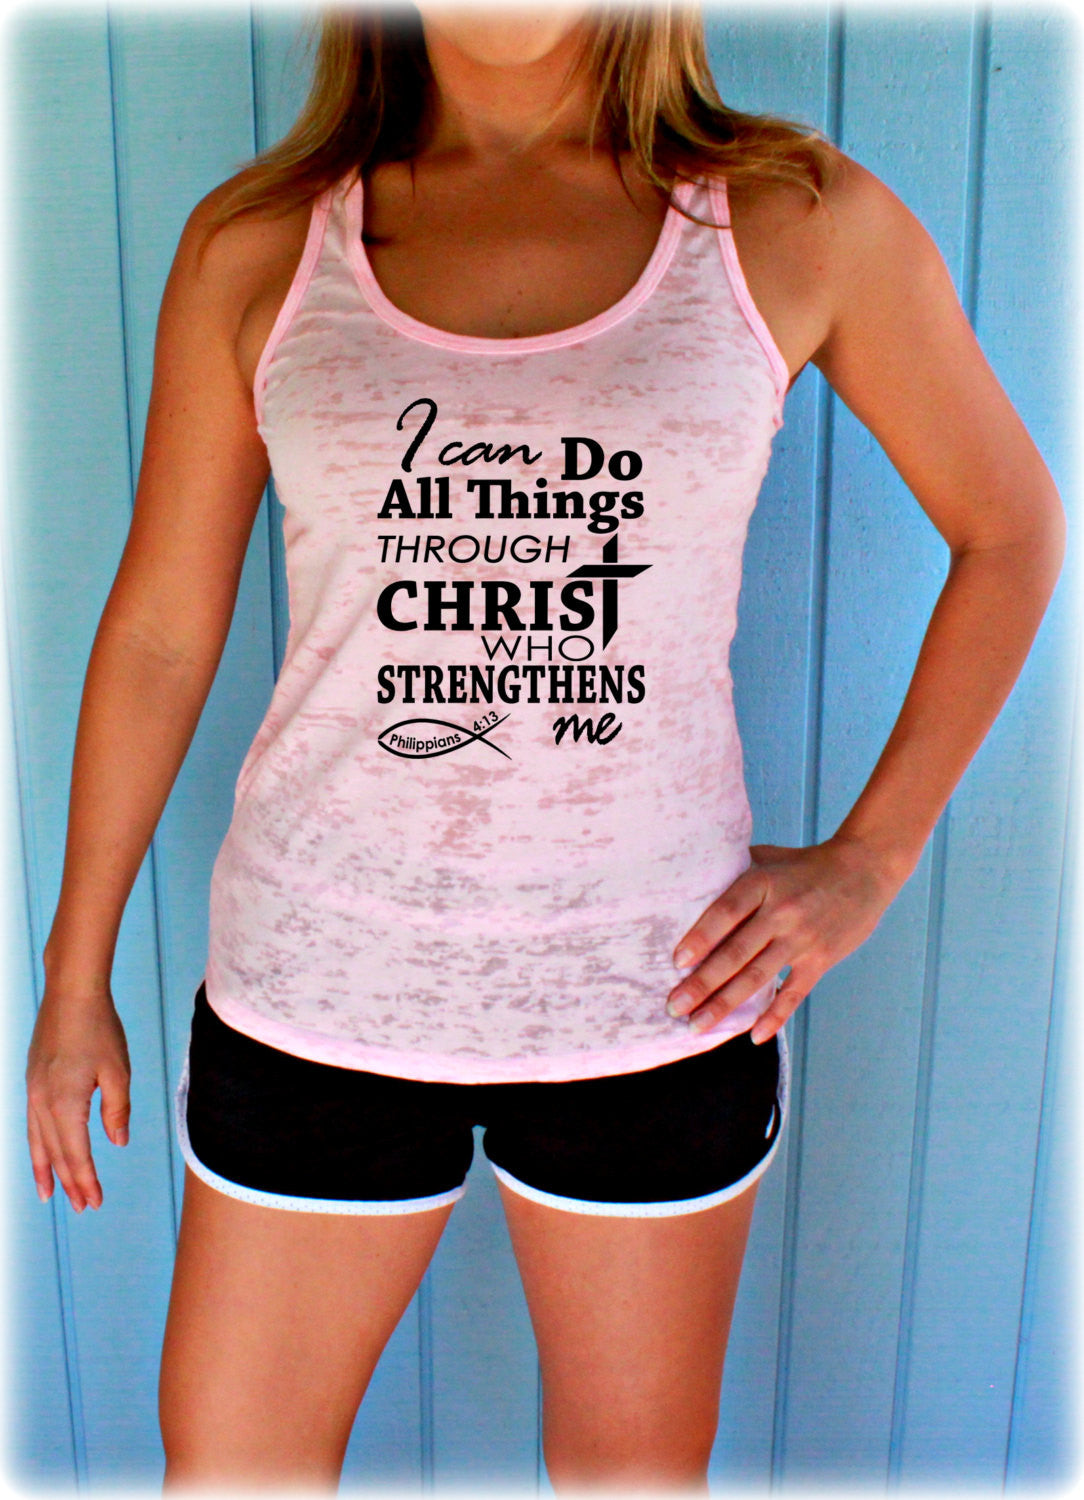 Womens Burnout Workout Tank Top. I Can Do All Things Through Christ. Phillipians 4 13 Bible Verse. Christian Workout Clothing.